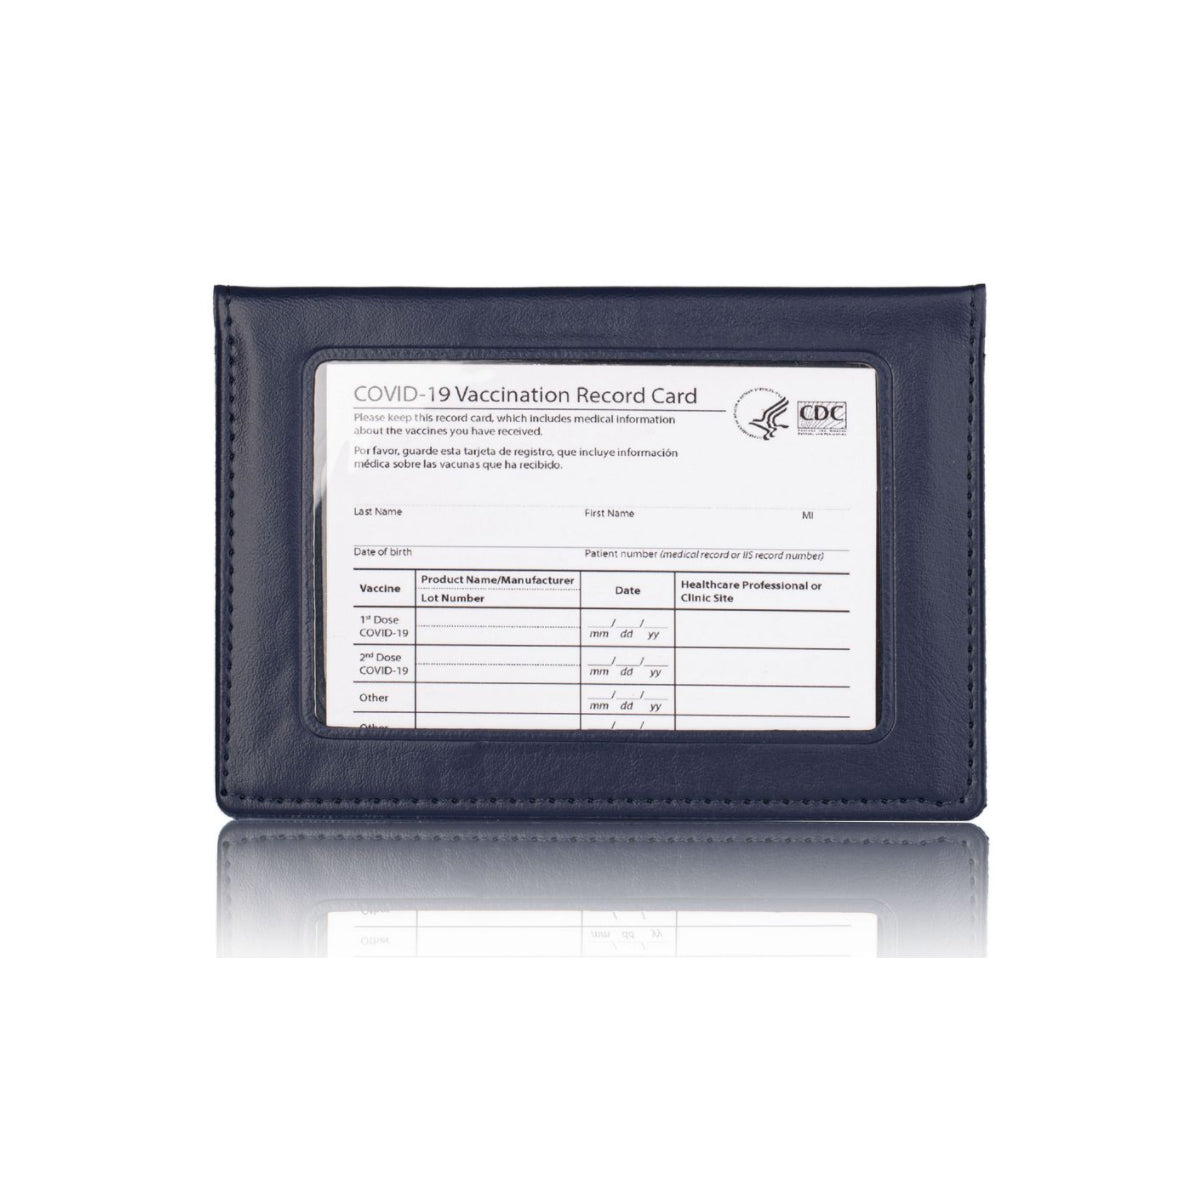 shopify-Essential 2 In 1 Vaccination Card And ID Card Holder-3